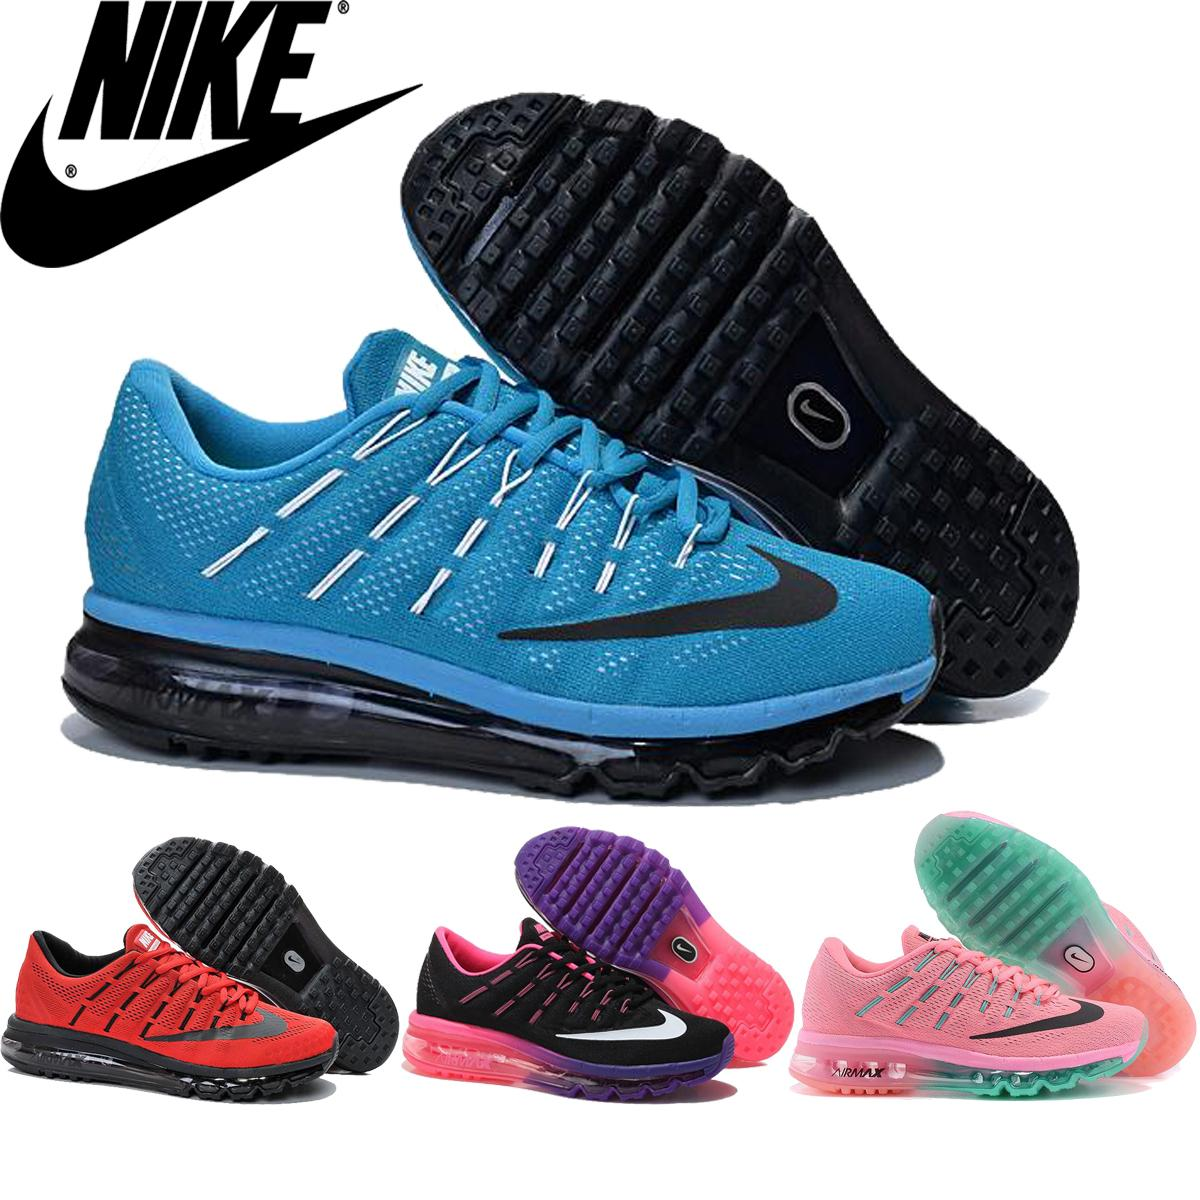 finest selection 075b9 1bf04 Nike Air Max 2016 Gs Womens  Running Shoe Black Pink Pow Volt Reflect  Silver,Original Air Maxes Airmax 2016 For Women Sports Shoes Shoes Running  Boys ...